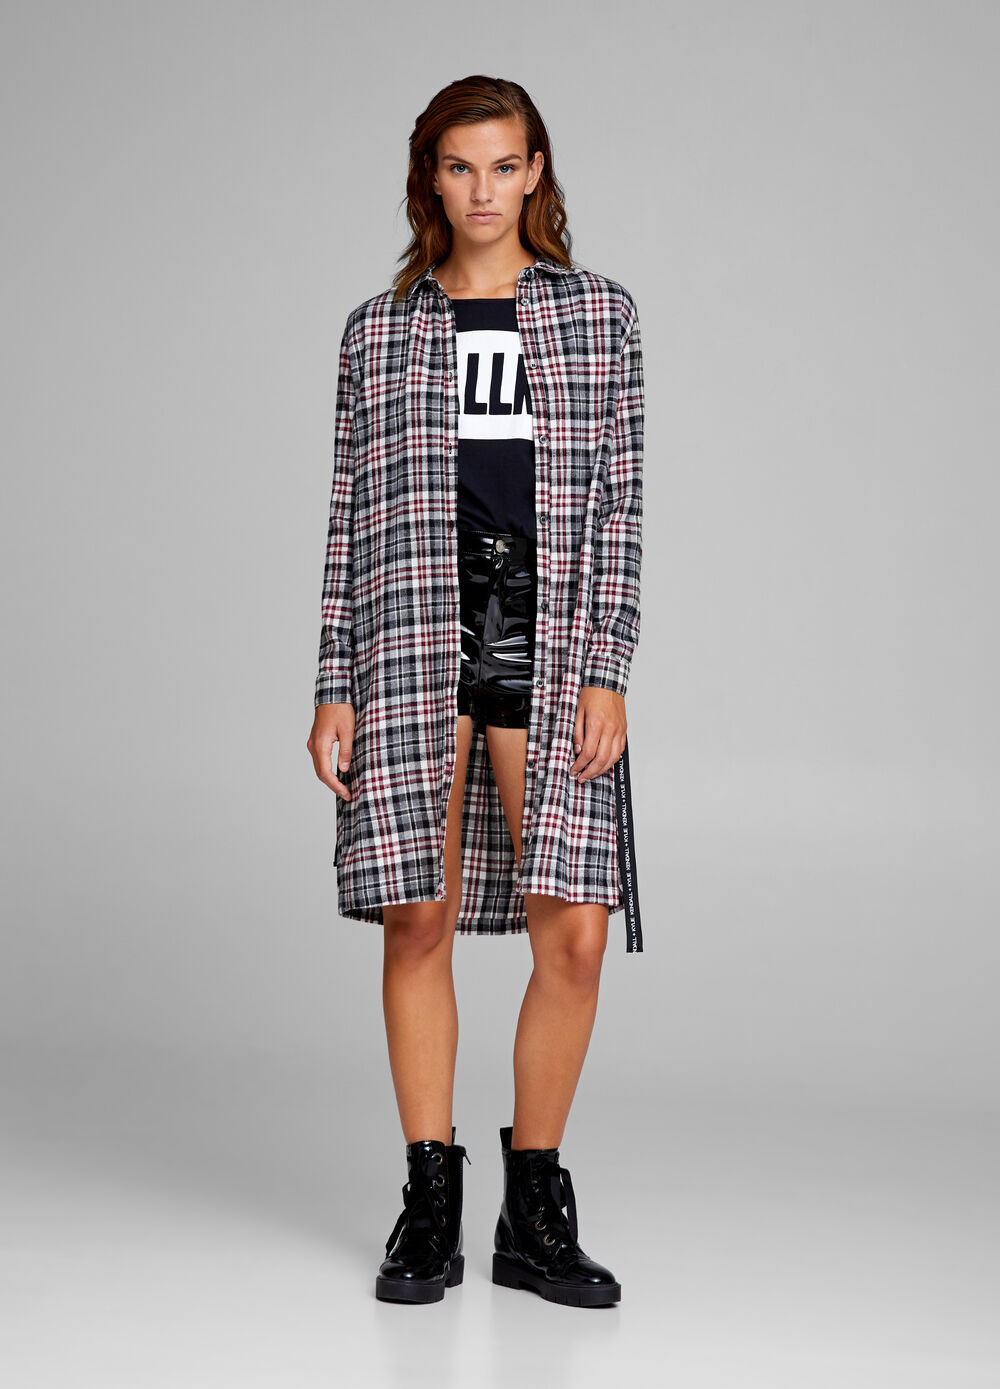 K+K for OVS cotton shirt dress